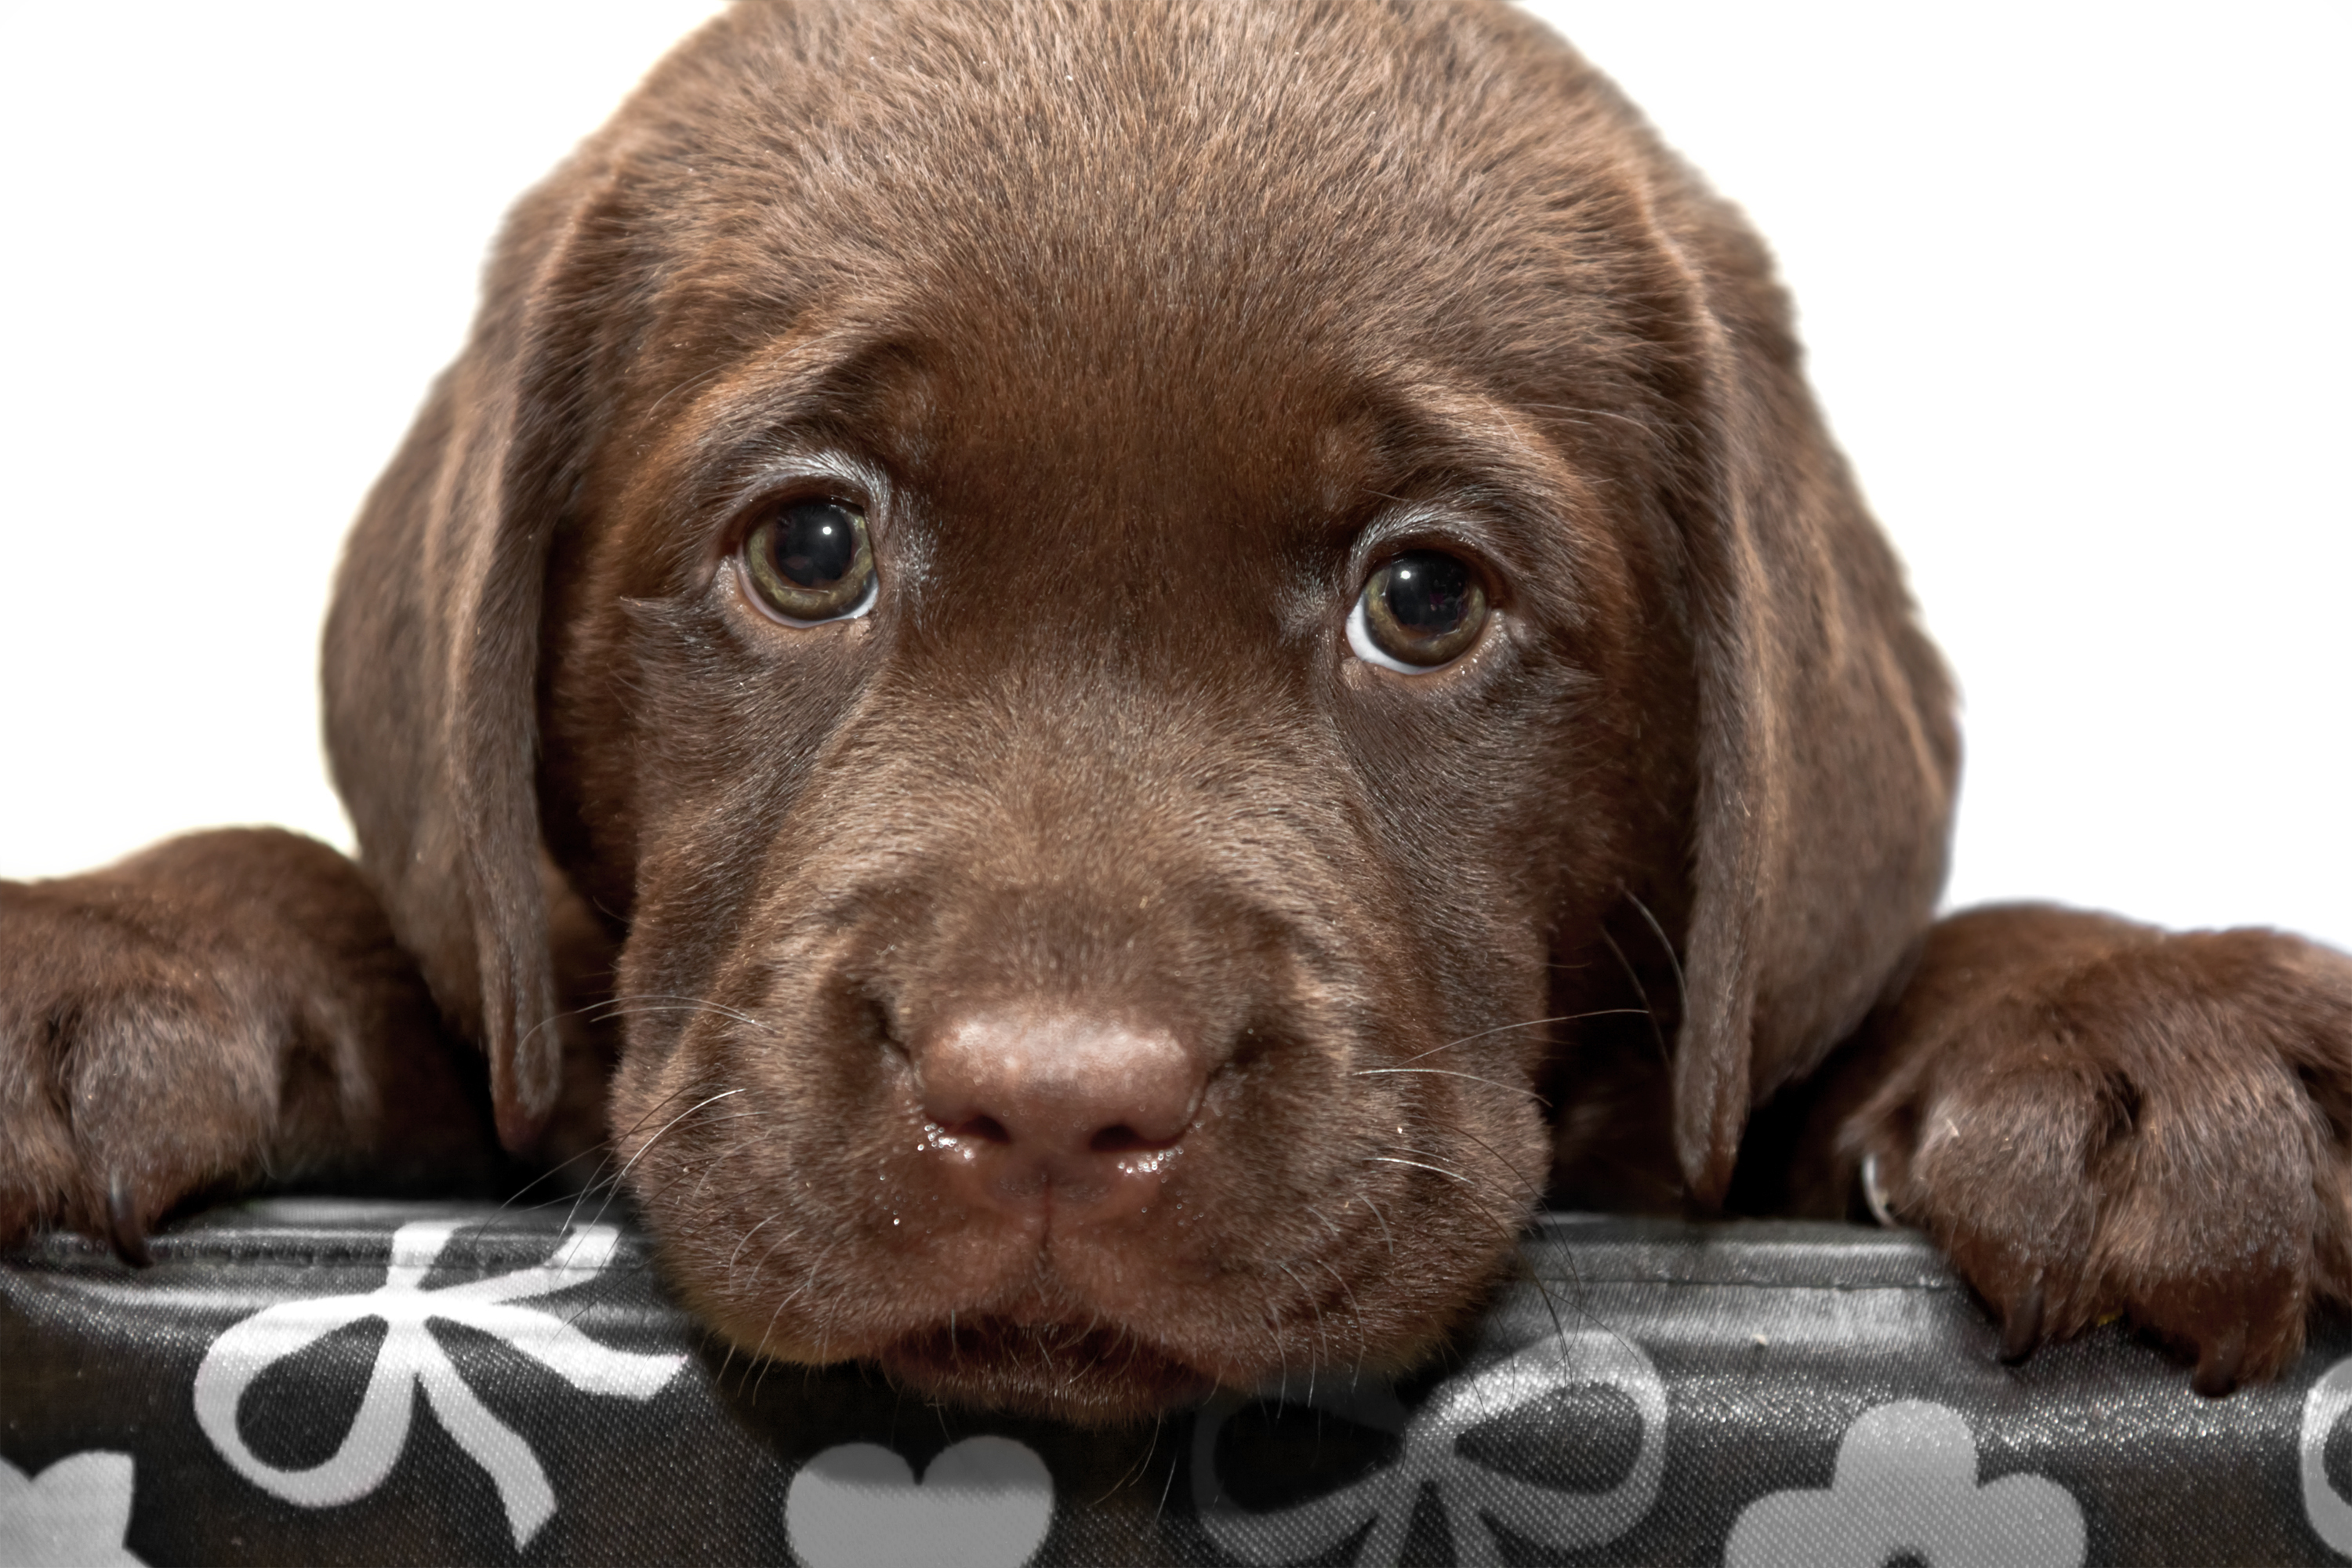 Chocolate lab puppy with puppy eyes